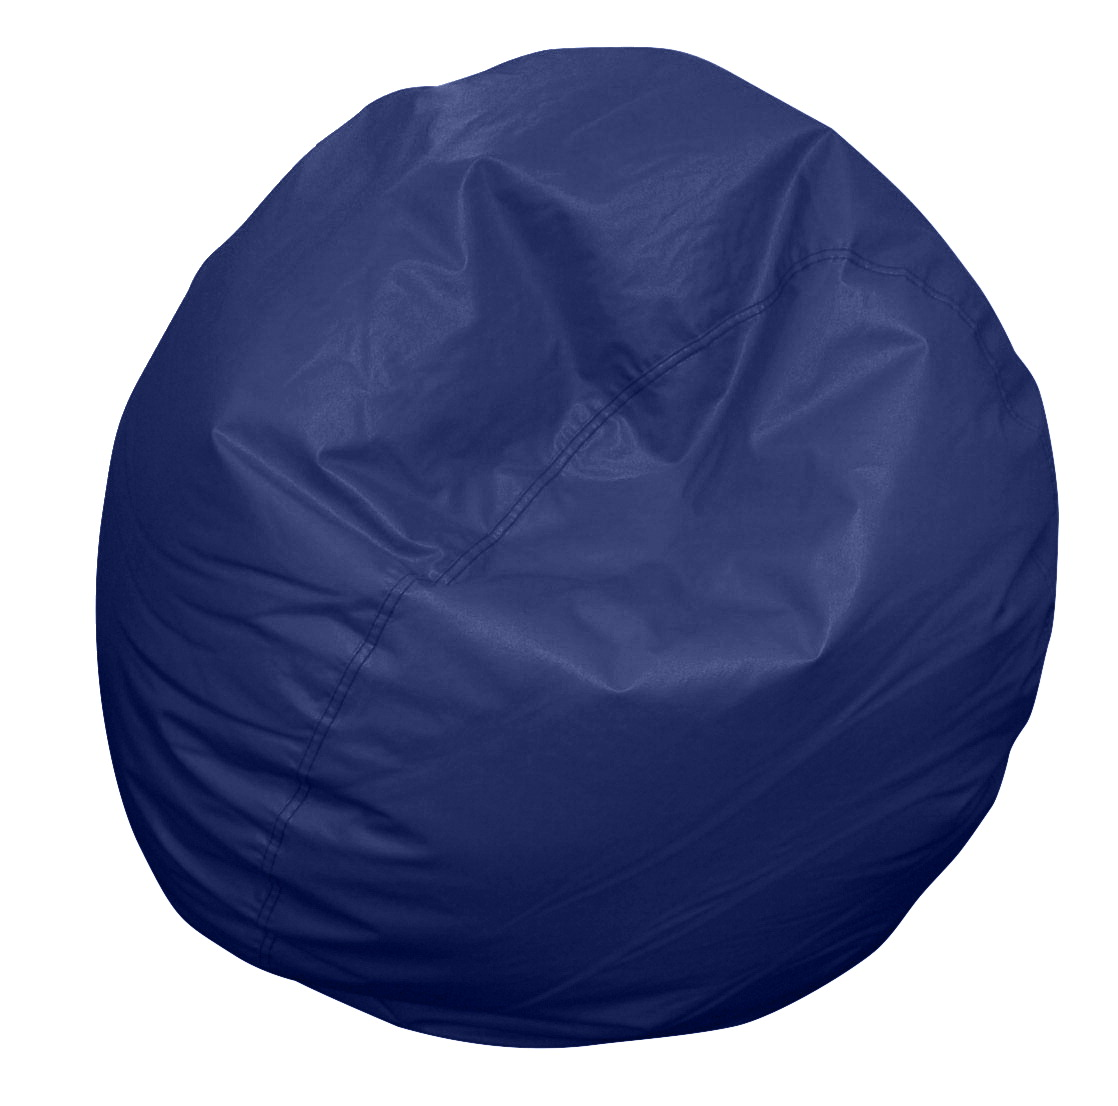 Brown S Child Bean Bag Chair 29 2 3 Inch Diameter Various